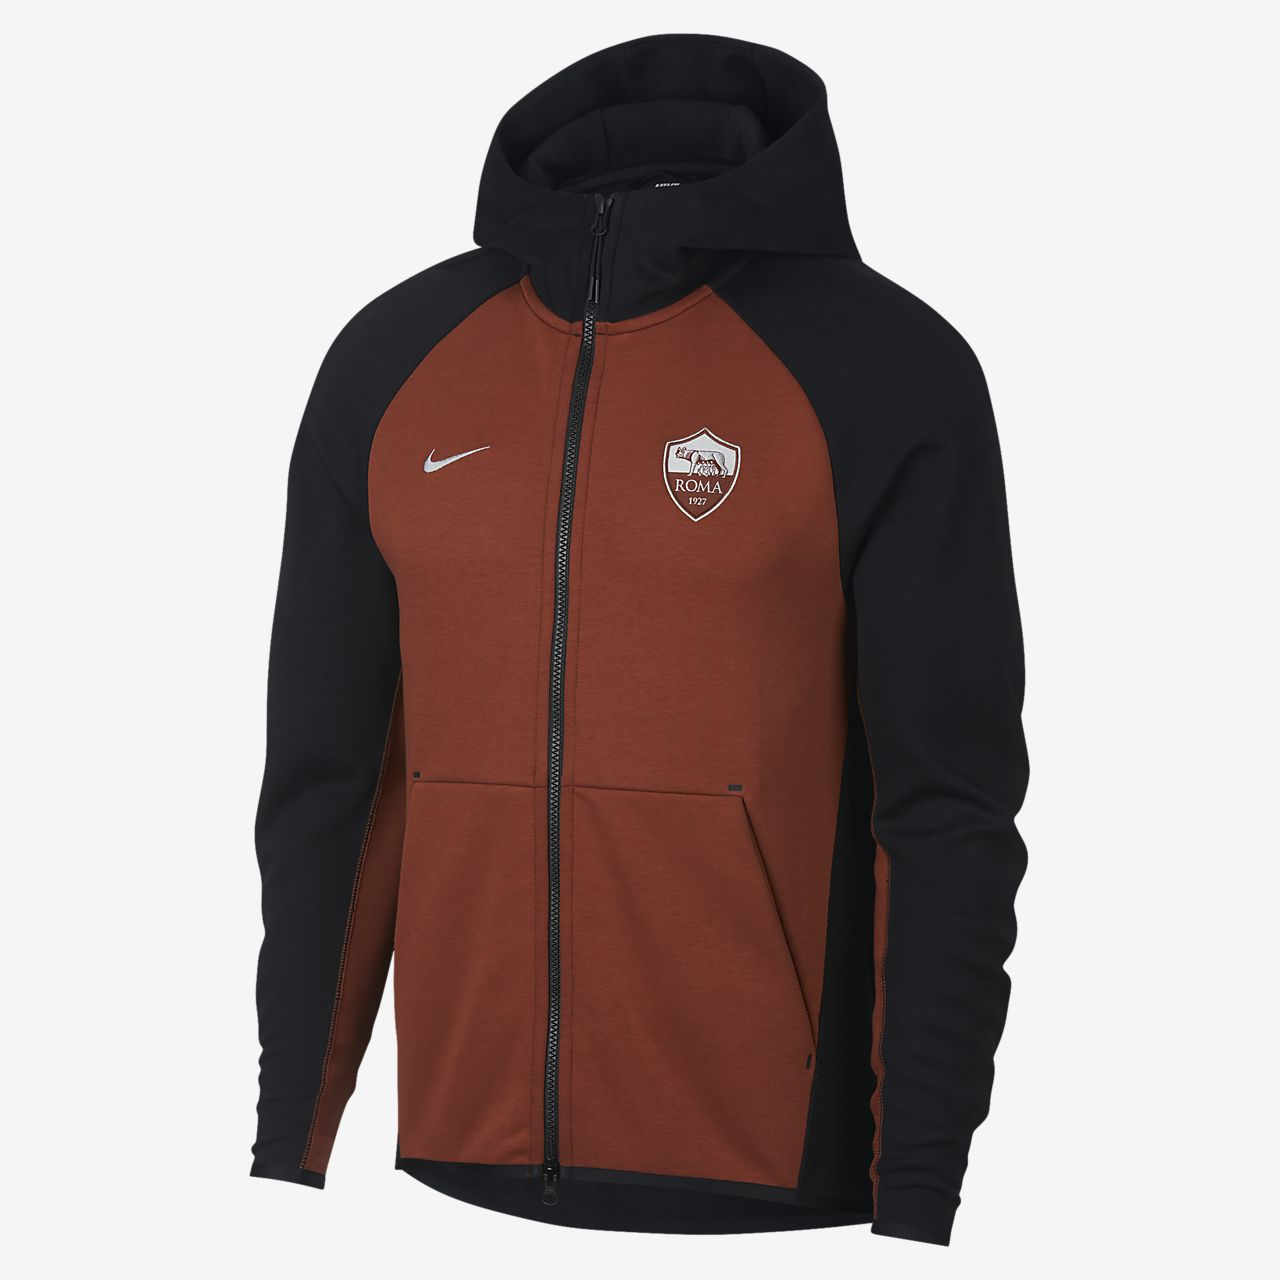 22775ed75ebb A.S. Roma Tech Fleece Men s Full-Zip Hoodie. Nike.com NO